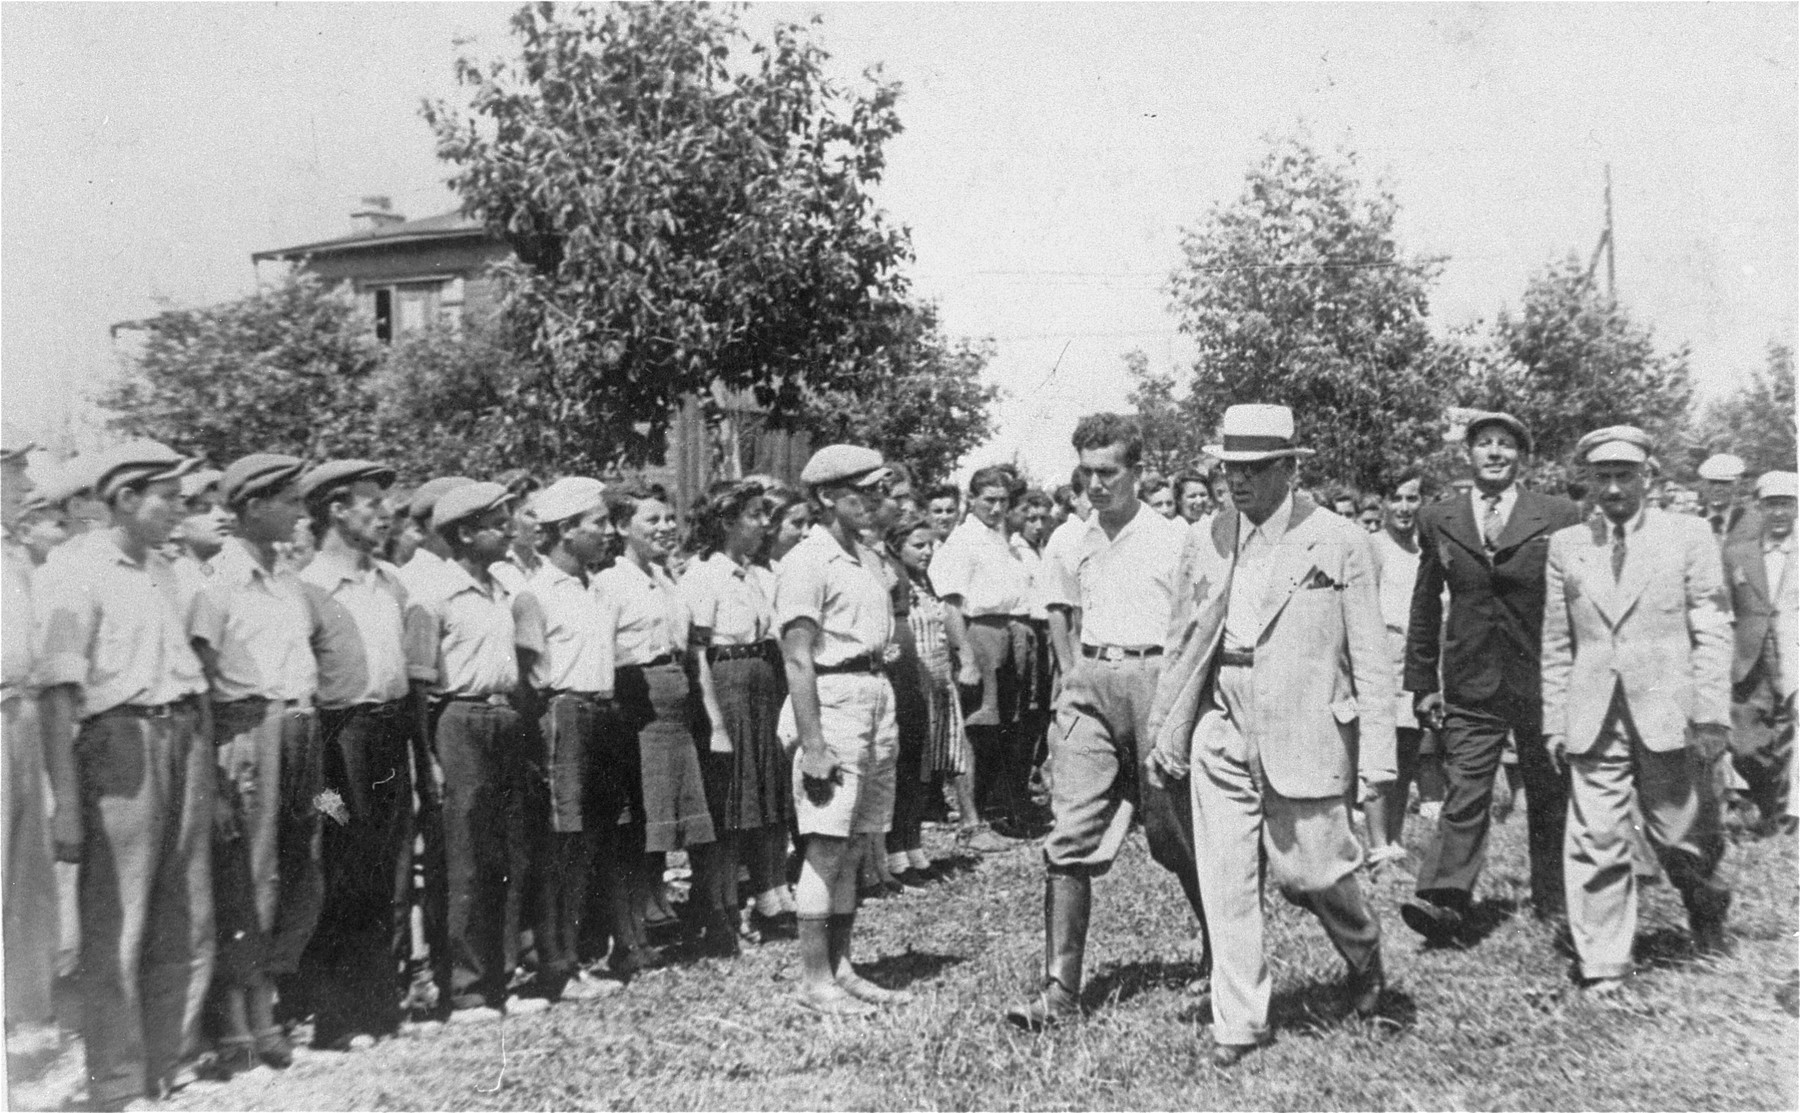 Mordechai Chaim Rumkowski, head of the Lodz ghetto Jewish council, and Leon Rosenblat, head of the Jewish police, review a group of Jewish youth during an official visit to the summer camp in the Marysin quarter of the Lodz ghetto.  Among the children pictured is Jakob Budkowski.  He was the son of Majer Szymon  Budkowski and  Szajna Zlata Lesz and was born May 13, 1927 in Lodz. He had three younger brothers; of his family, only Jakob survived.